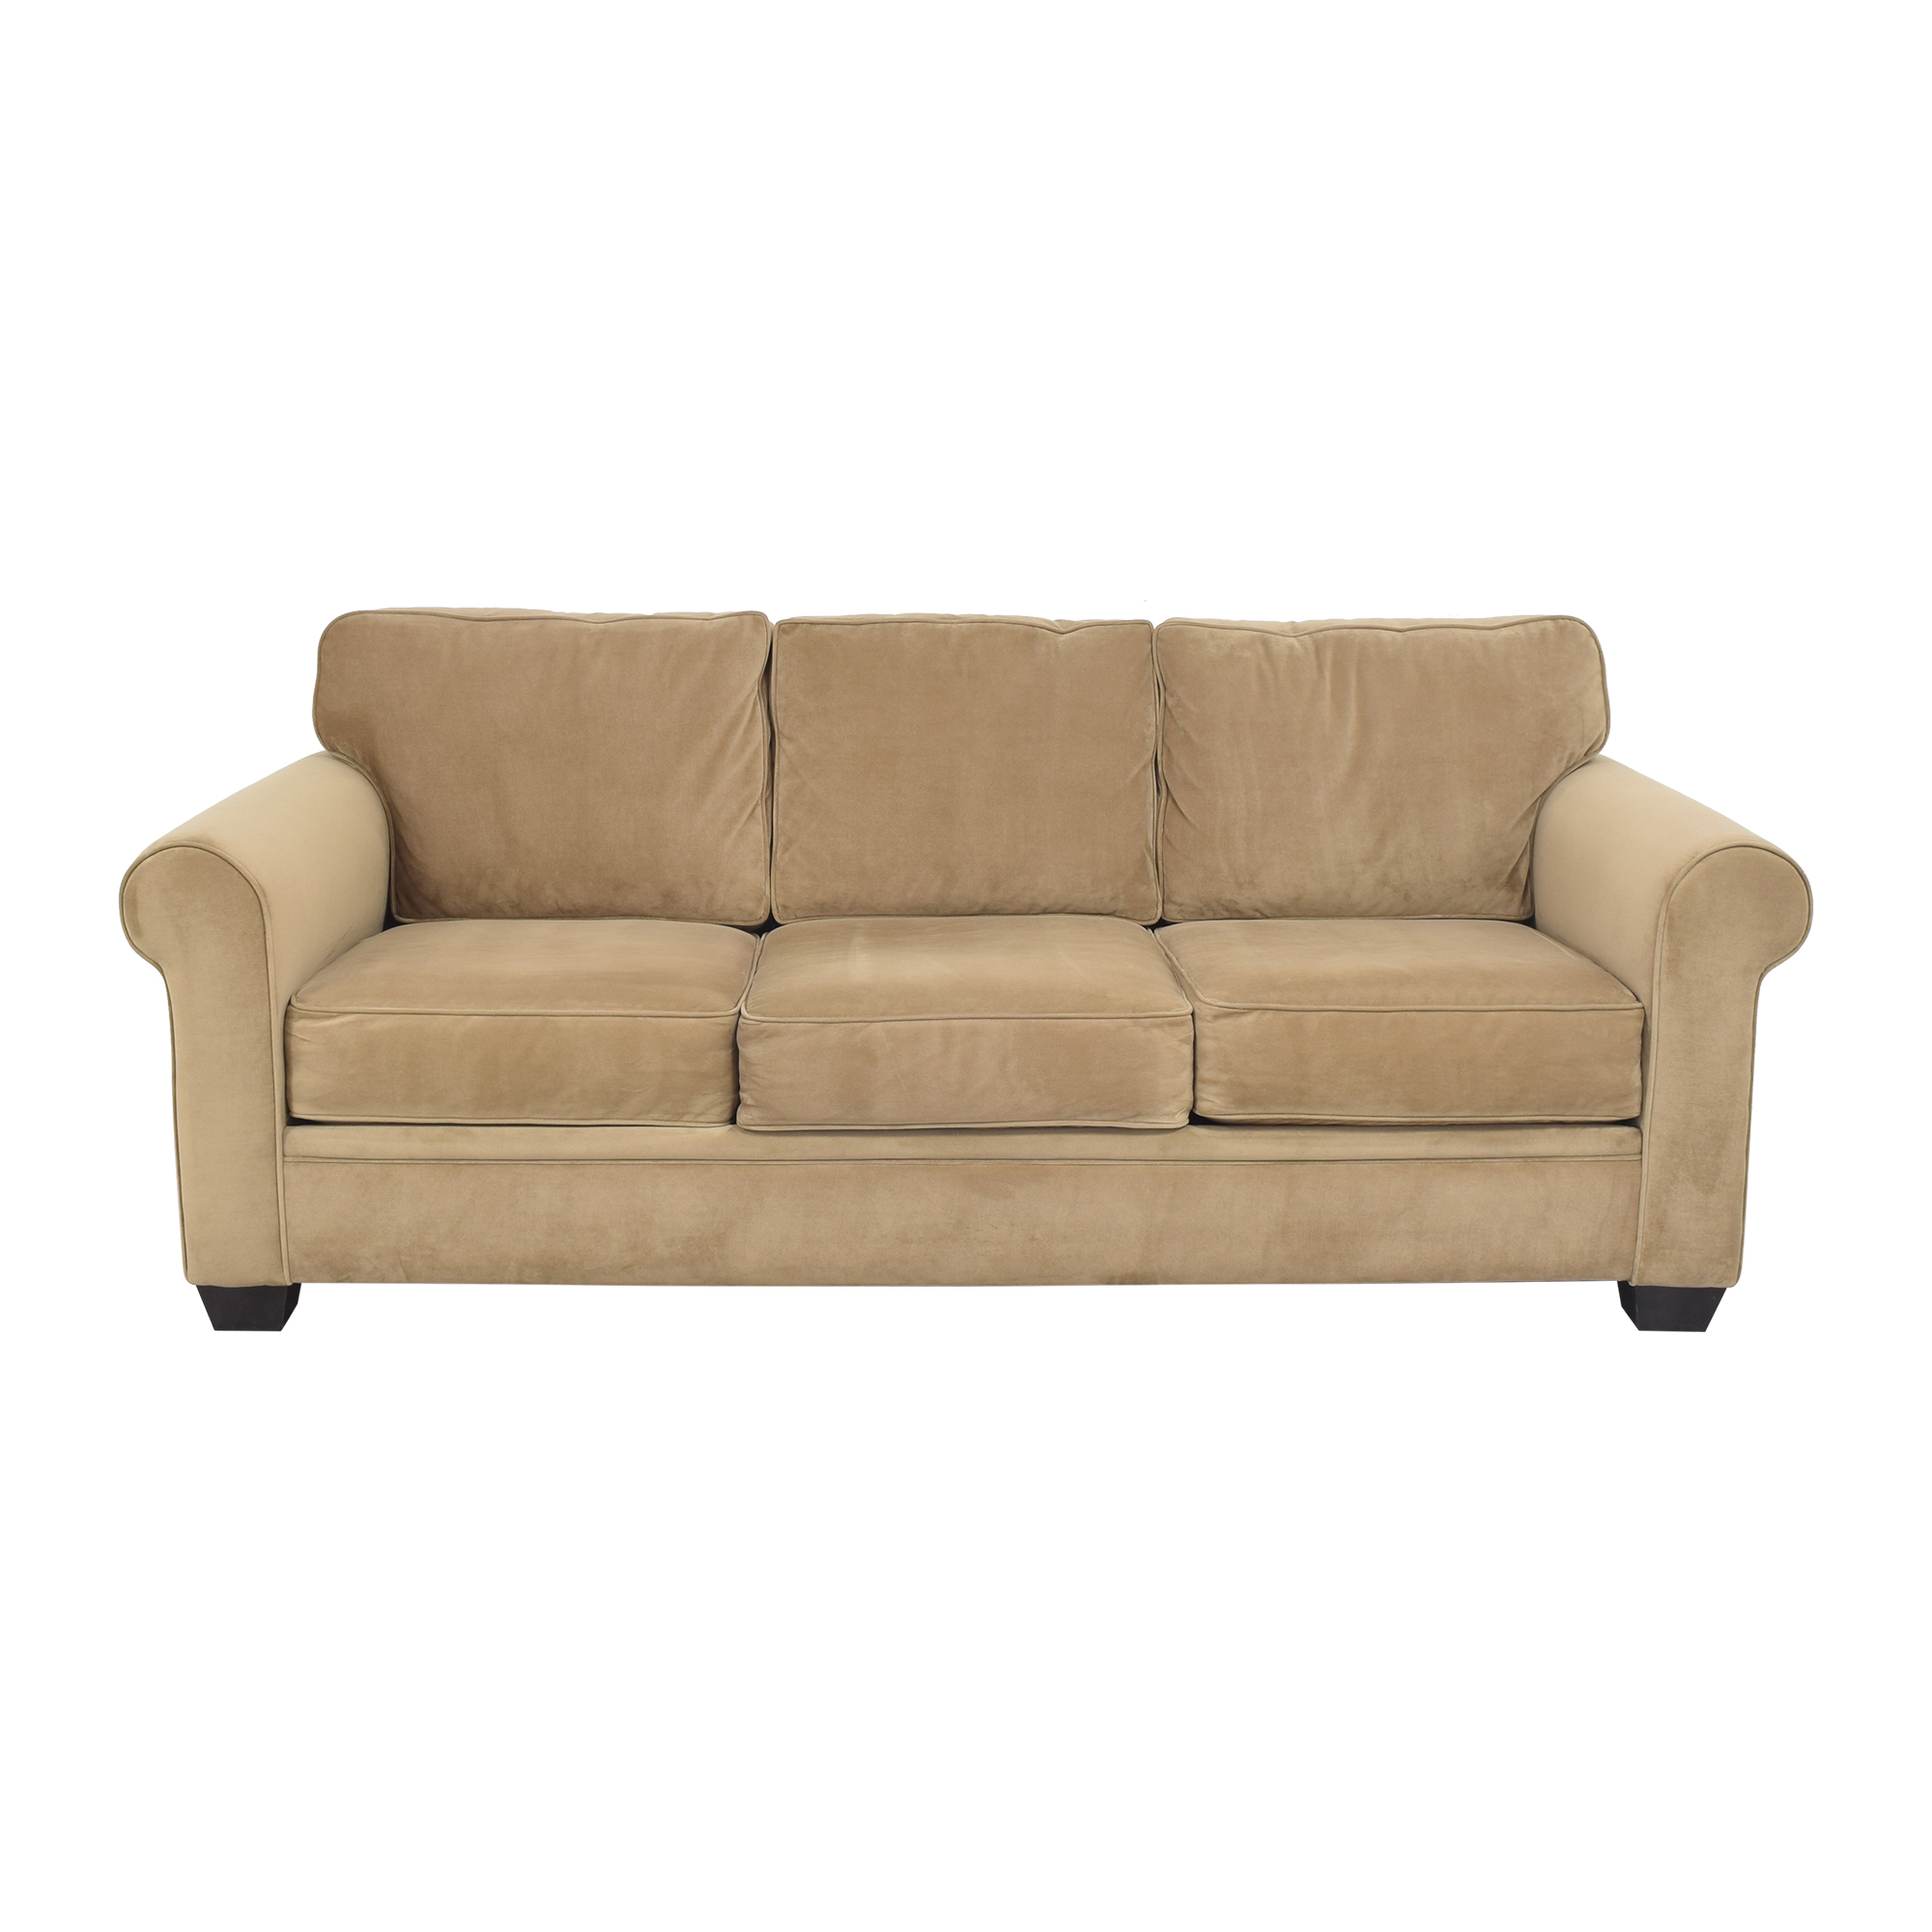 buy Macy's Three Cushion Roll Arm Sofa Macy's Classic Sofas